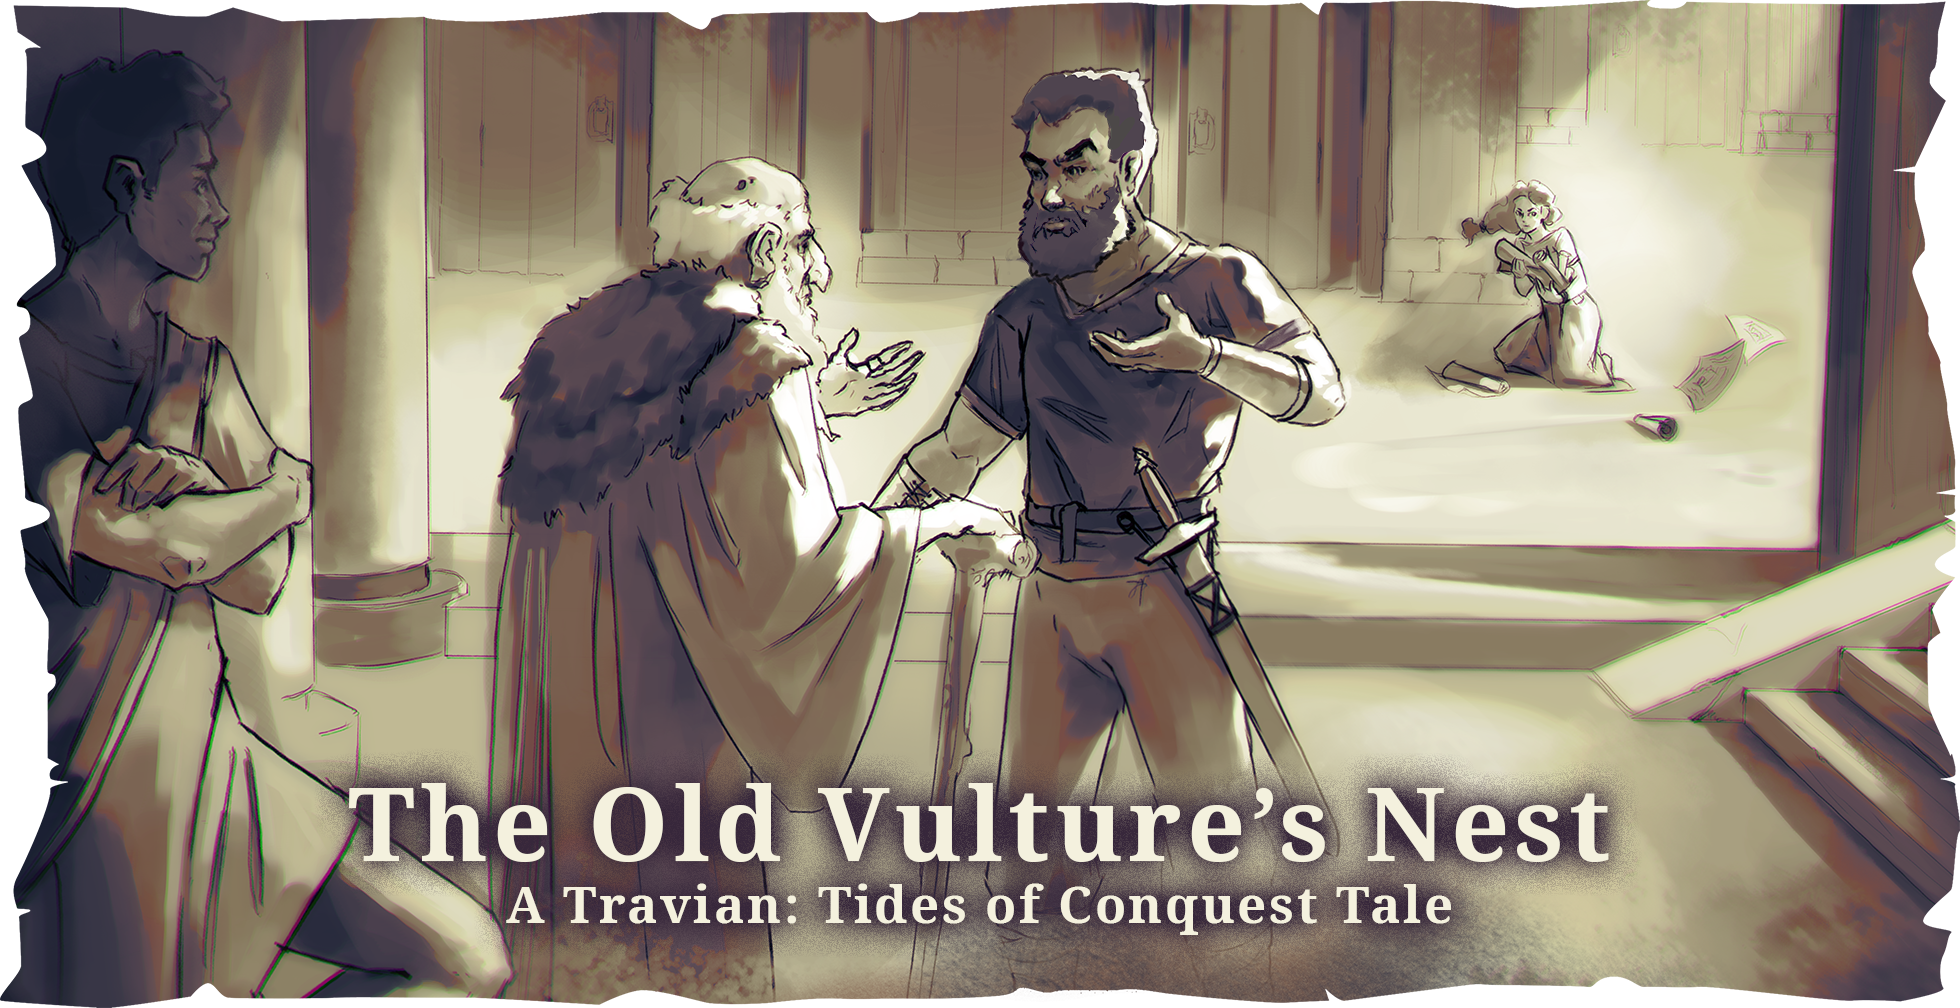 AUDIOBOOK ~ The Old Vulture's Nest – A Travian: Tides of Conquest Tale